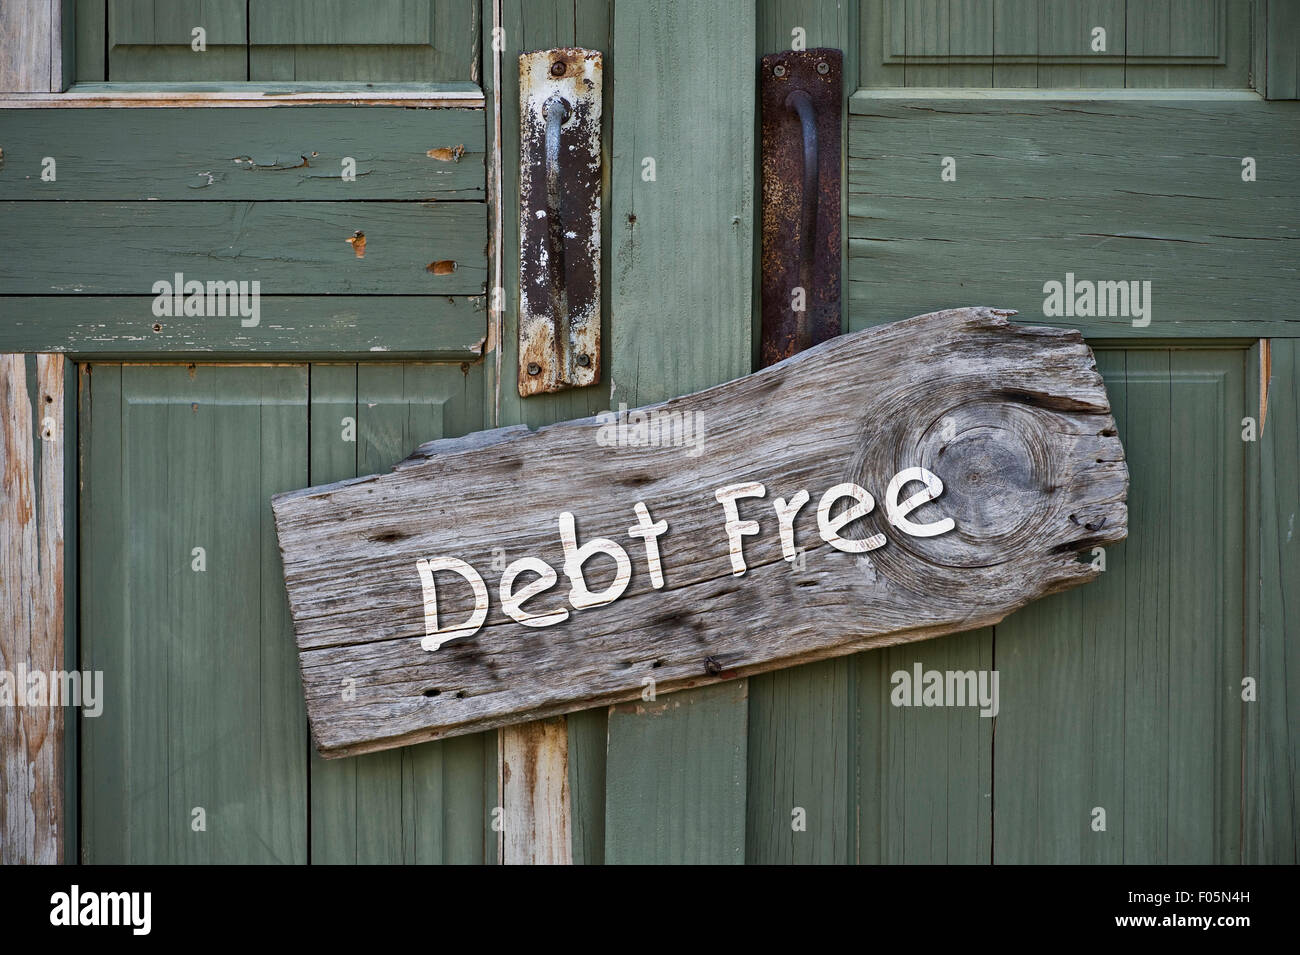 I am debt free sign on green doors. - Stock Image